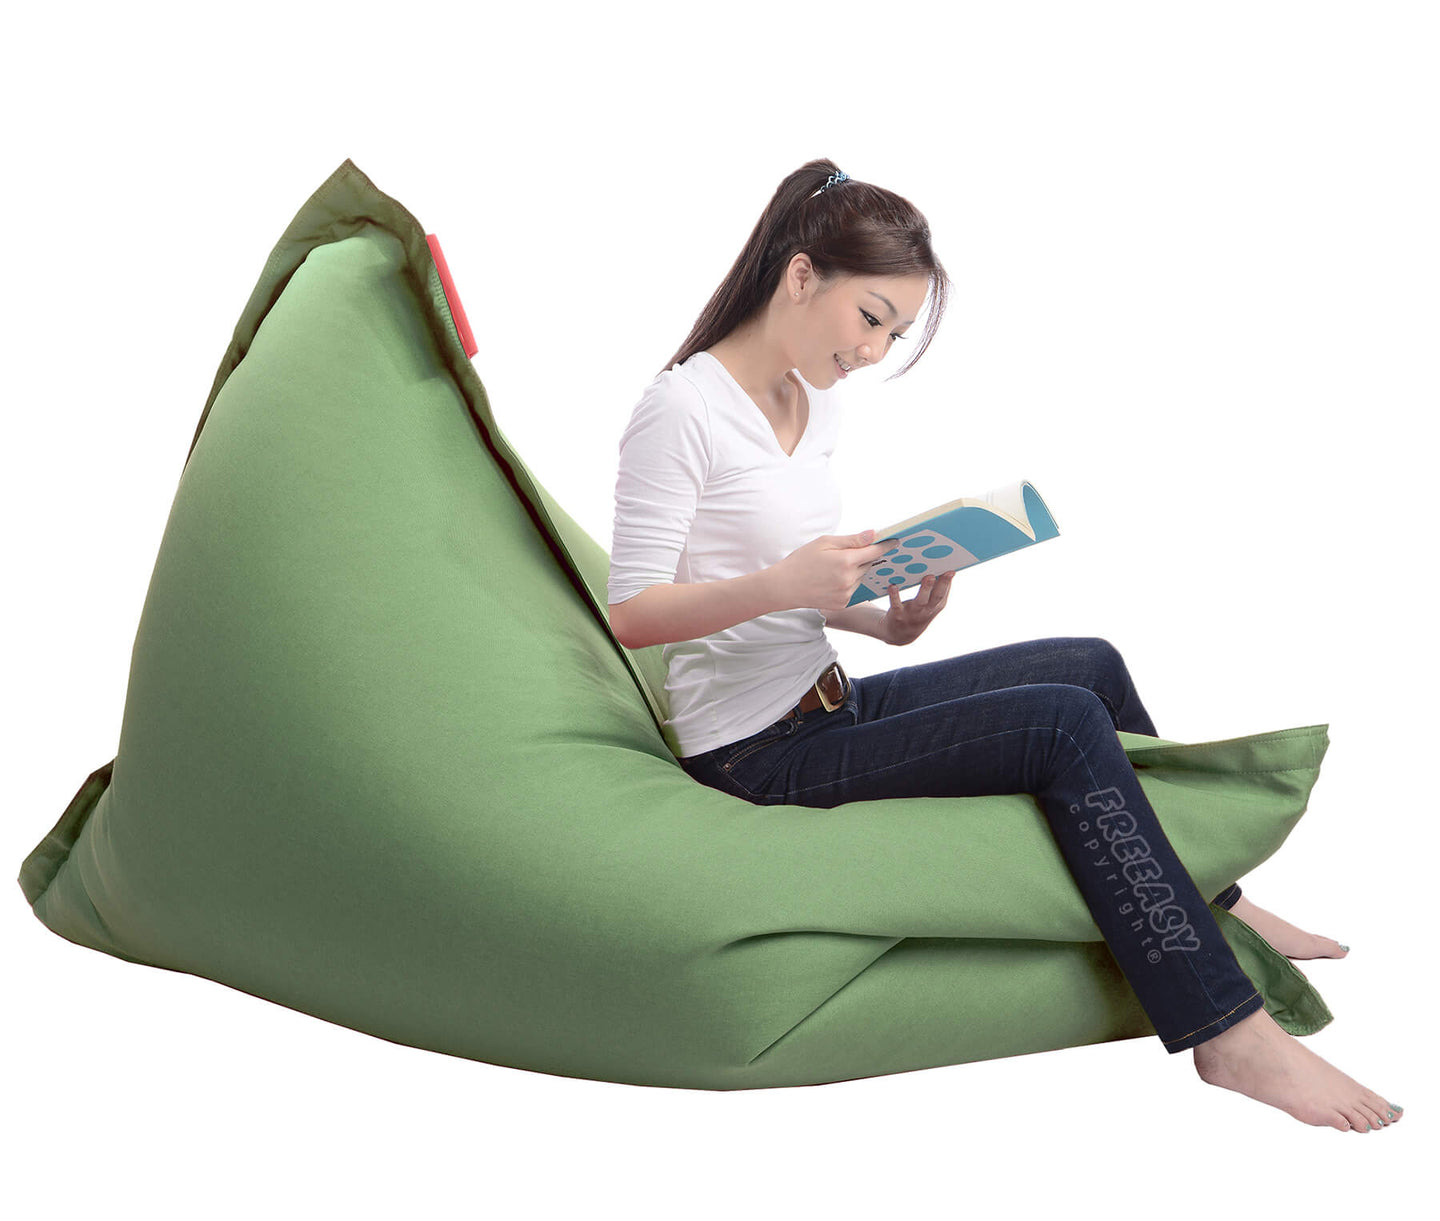 FREEASY® #70 Bean Bag - Sage